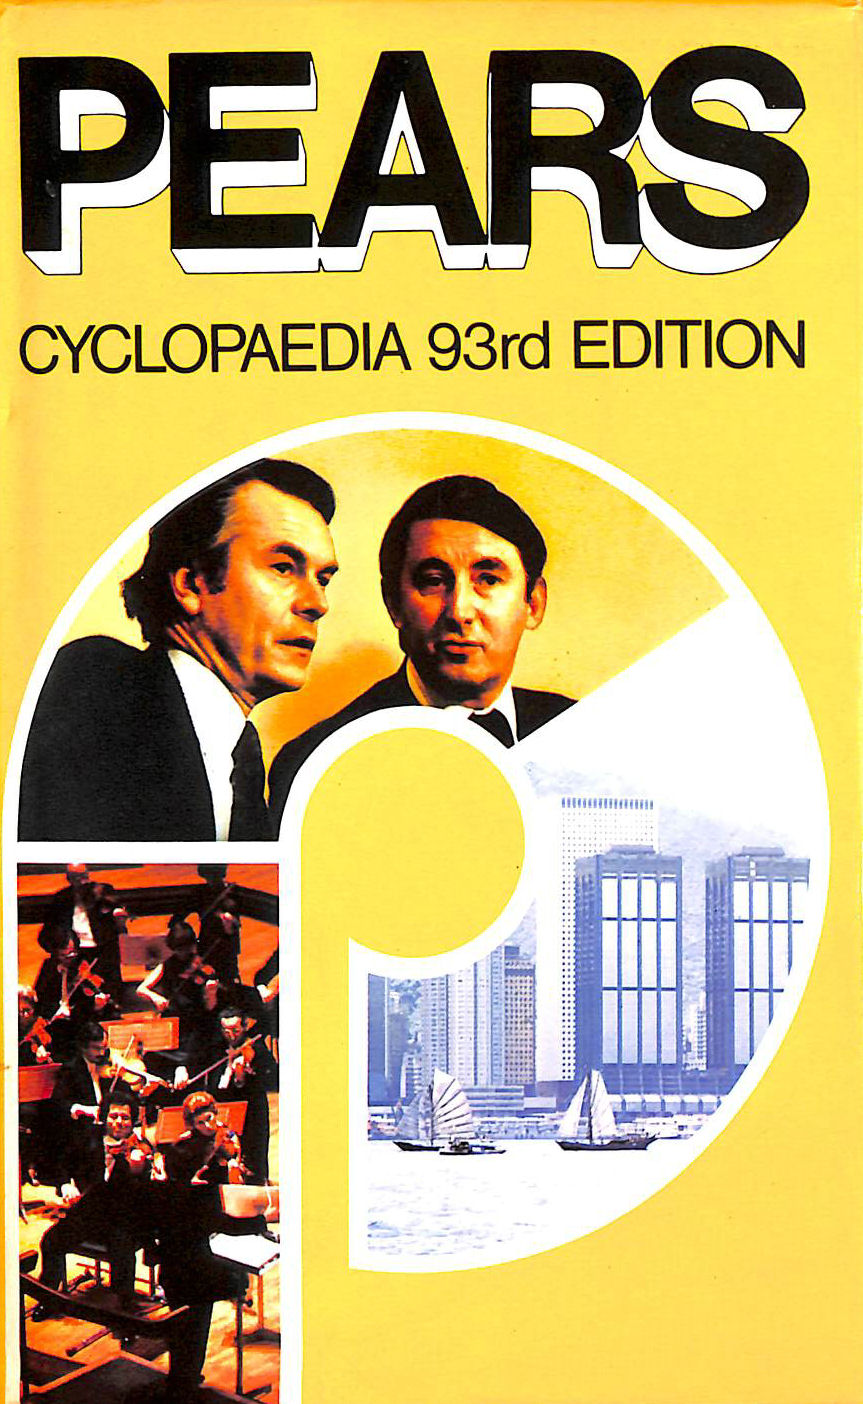 Image for Pears Cyclopedia 93rd Edition